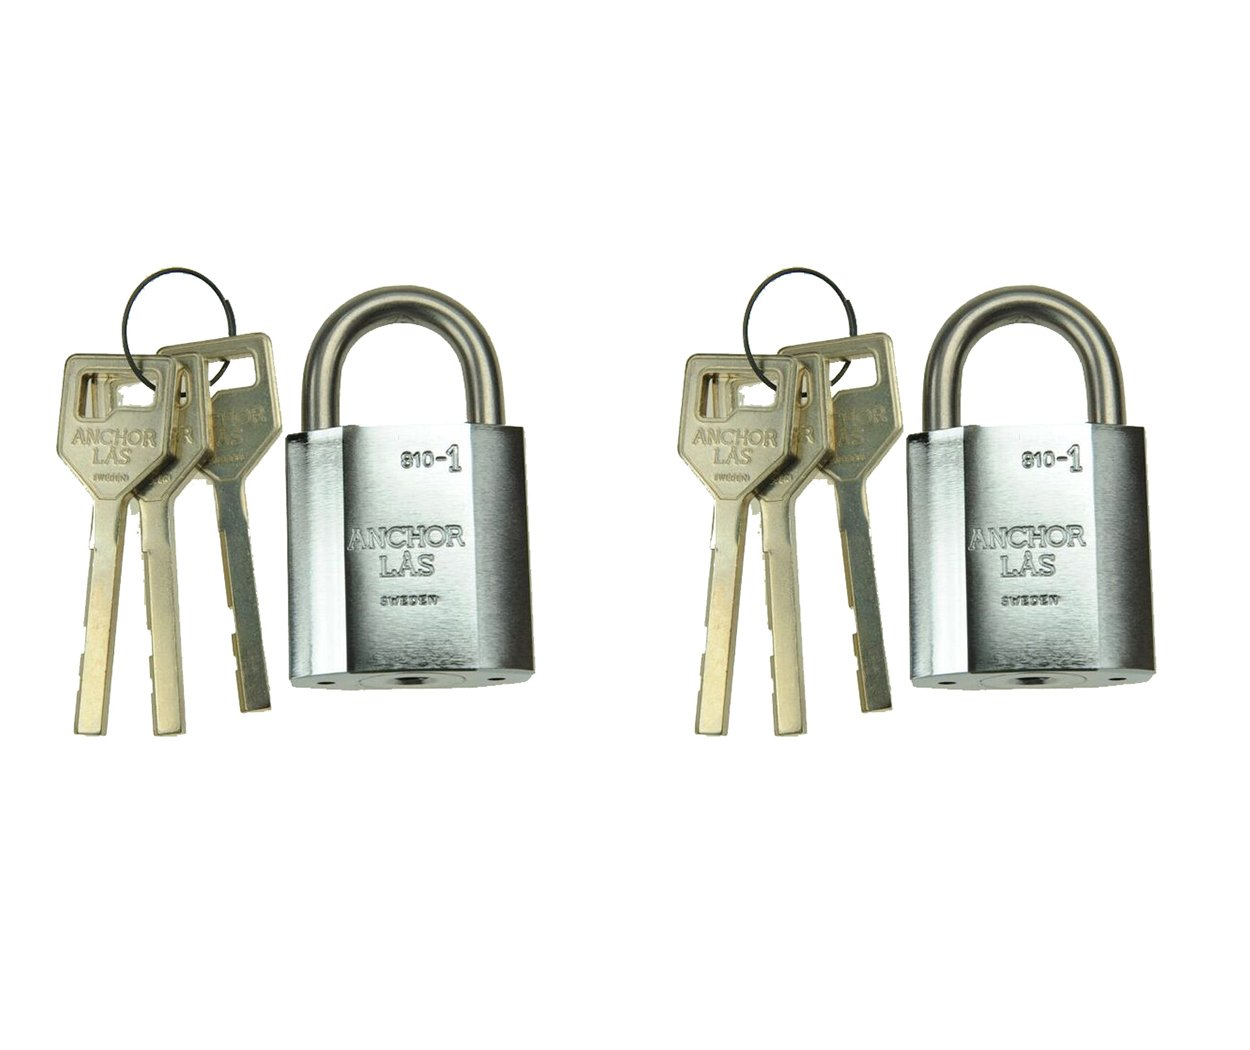 Combo Set of 2 Anchor Las Keyed Different Padlocks by Anchor Las